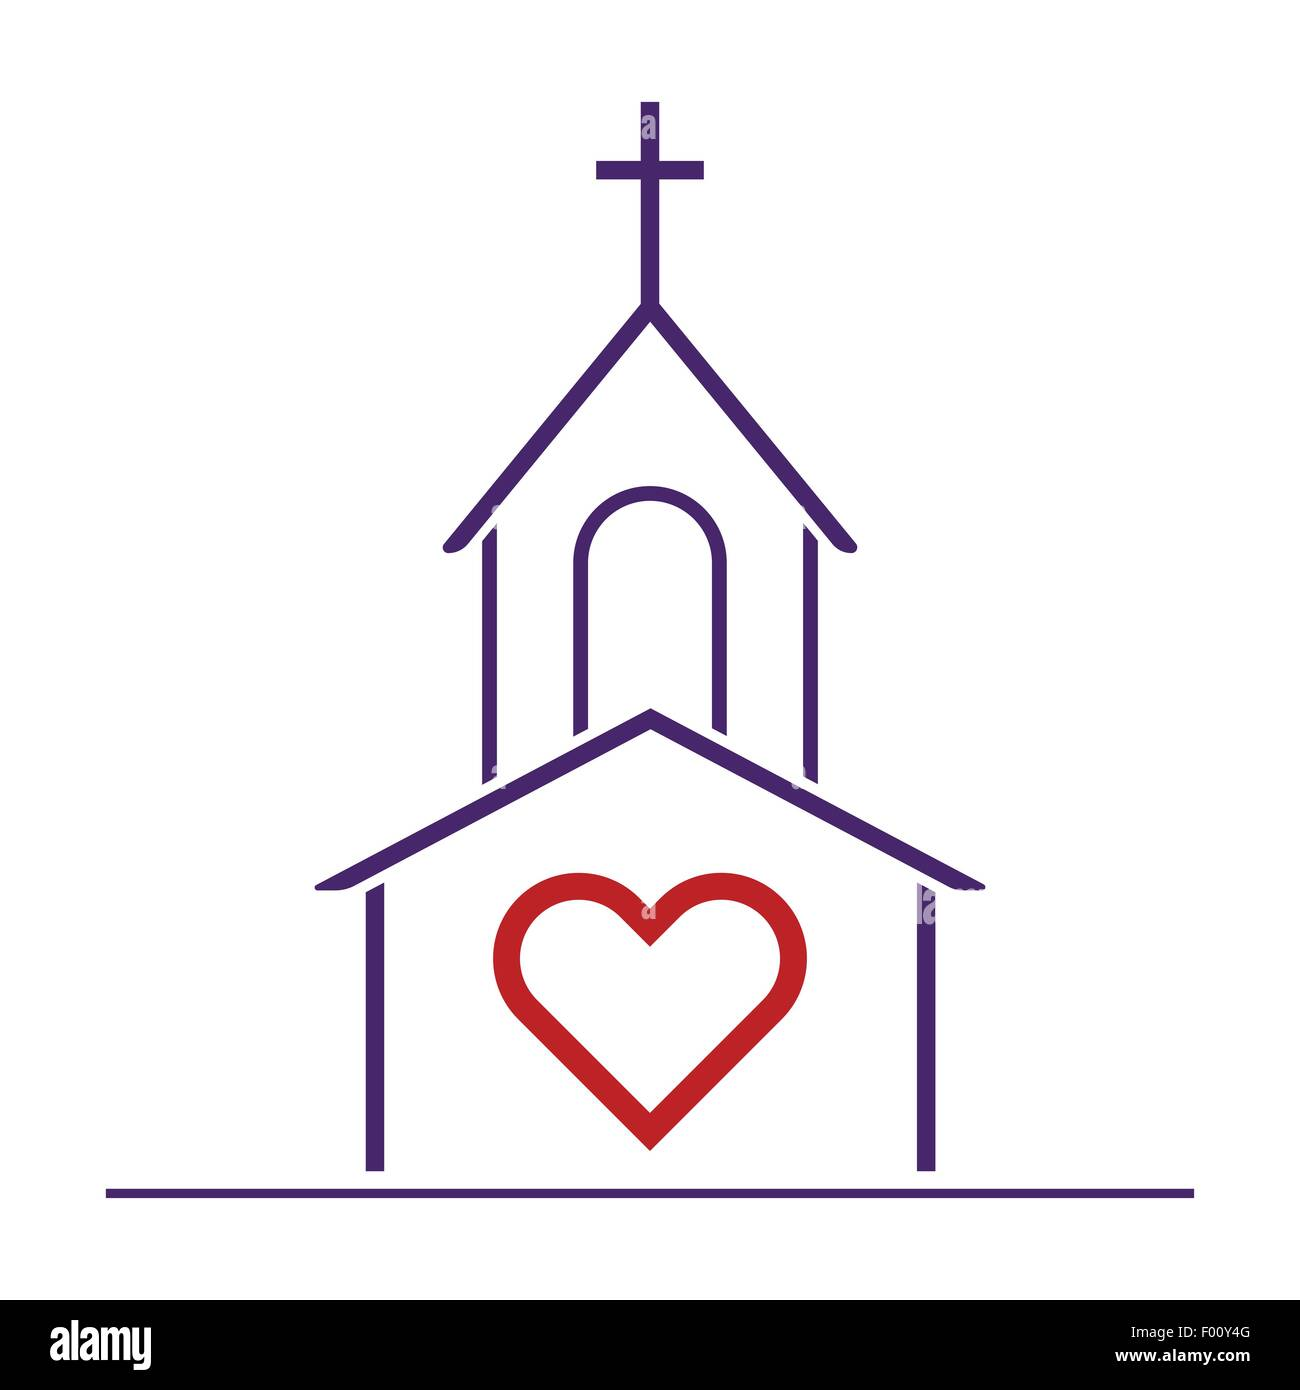 Christian church and heart as love symbol religious love concept christian church and heart as love symbol religious love concept vector illustration biocorpaavc Image collections